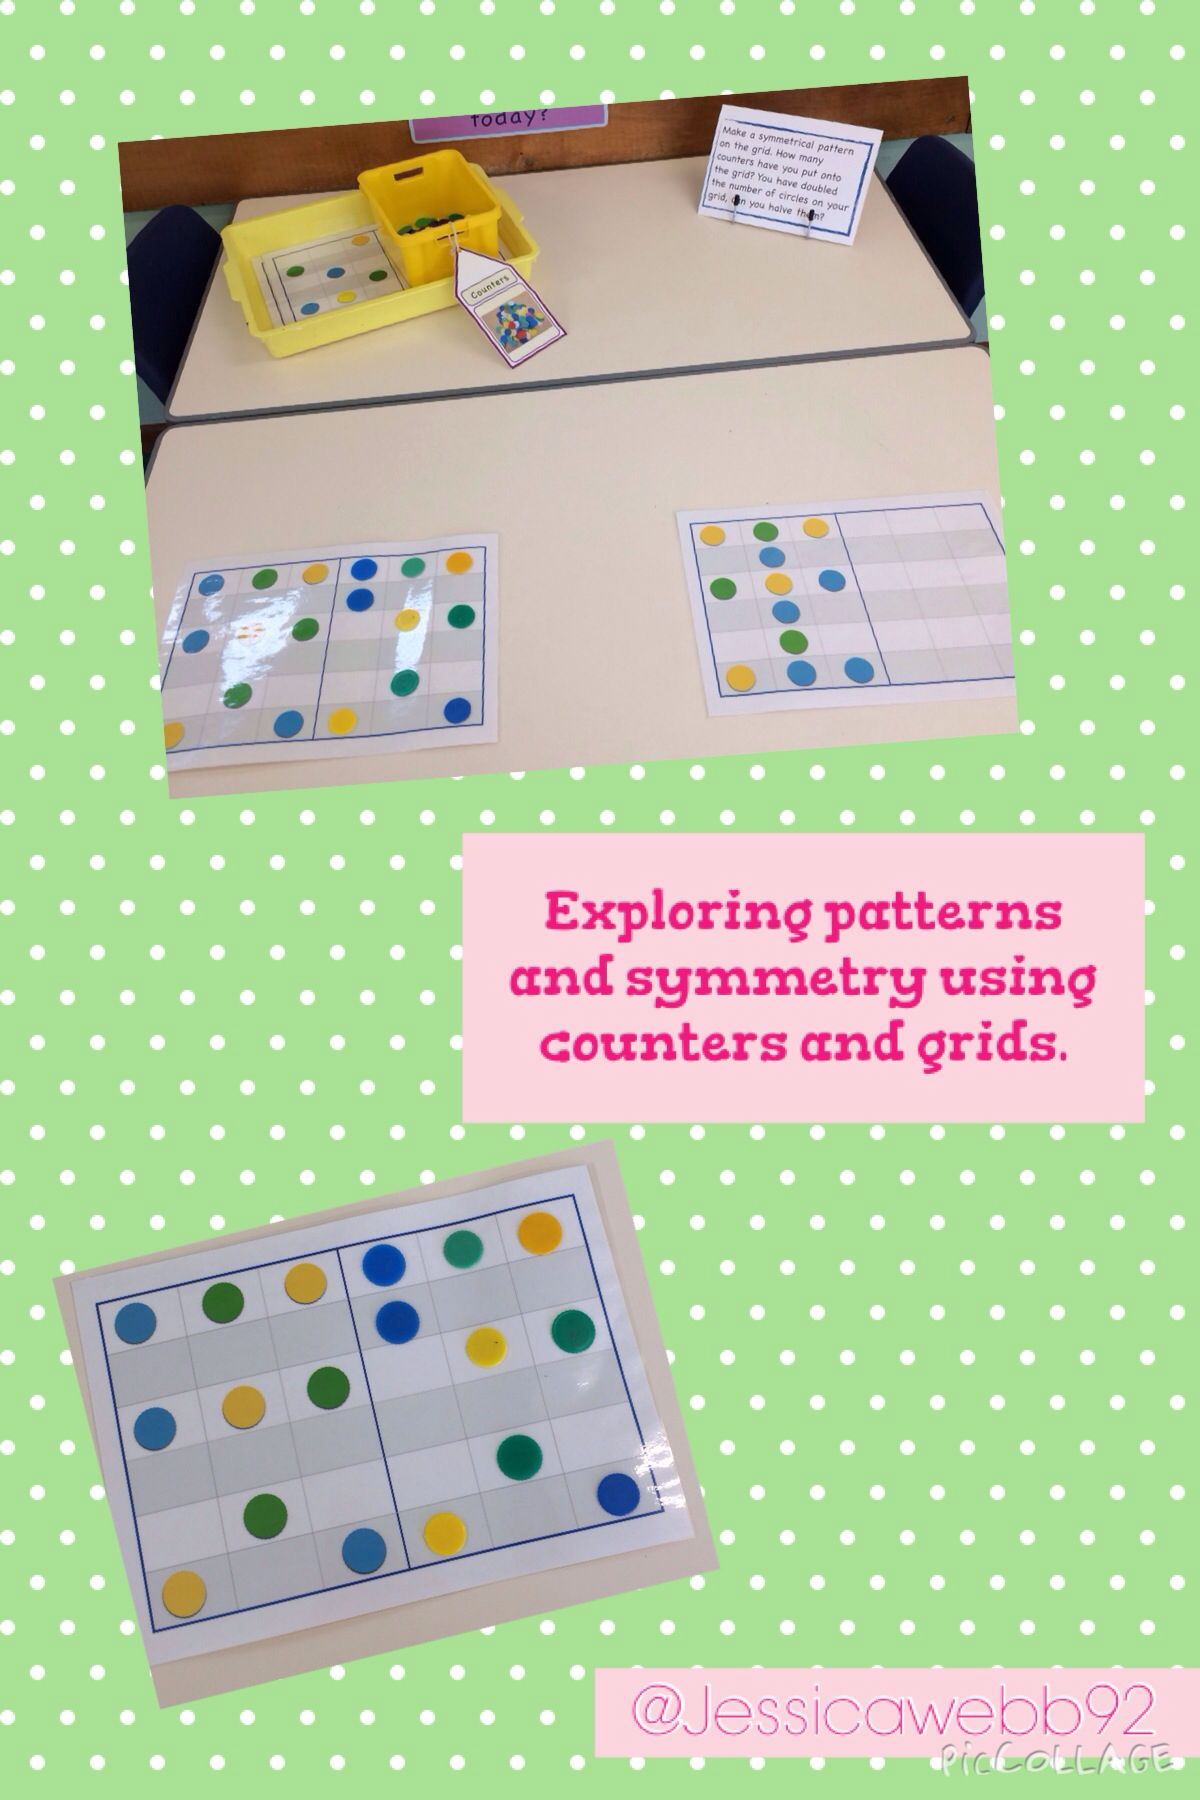 Exploring Symmetry And Patterns Using Counters And Grids